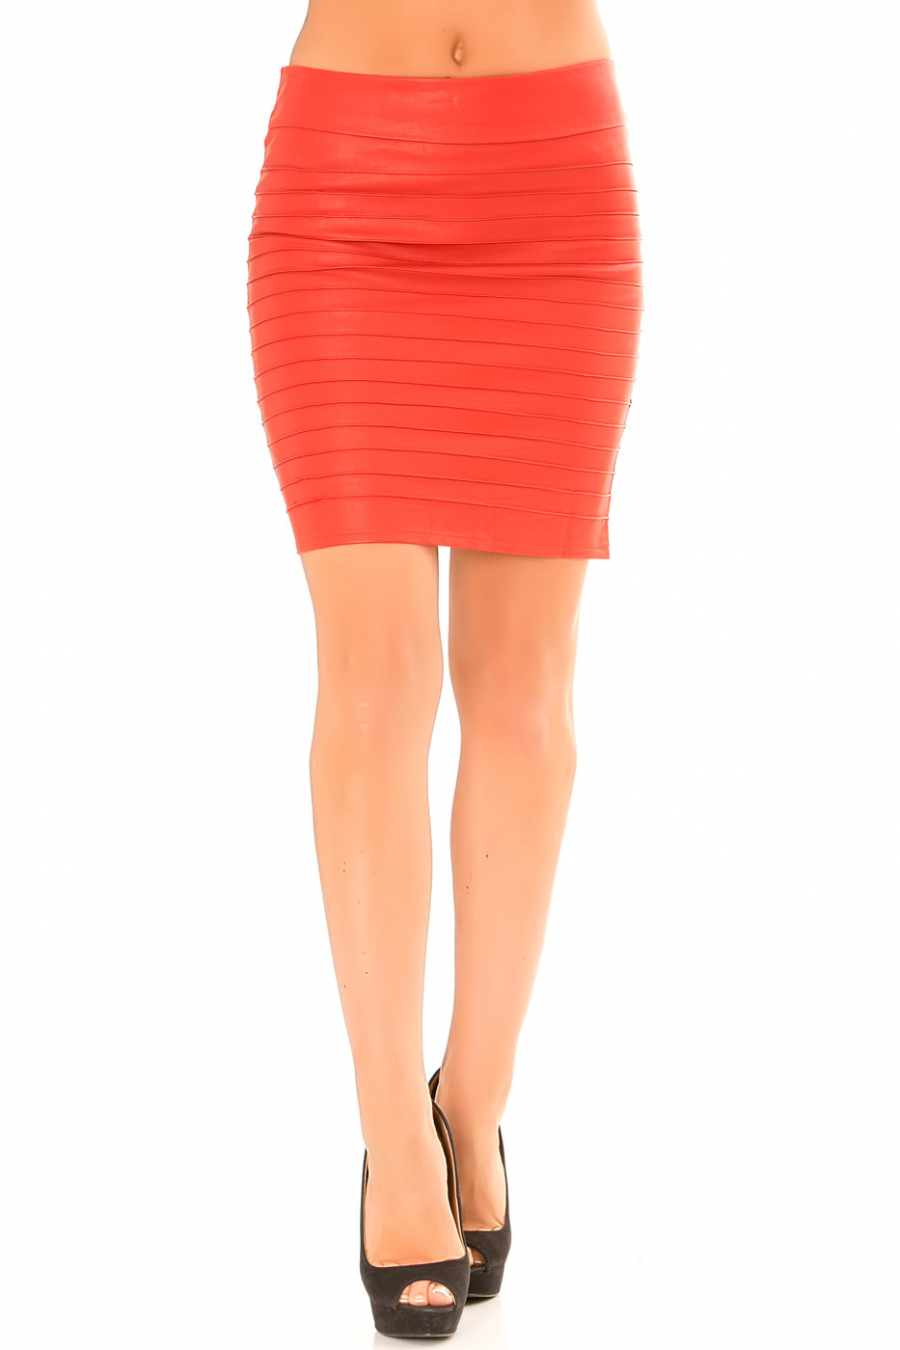 Red skirt in ribbed imitation. Sexy skirt. 625